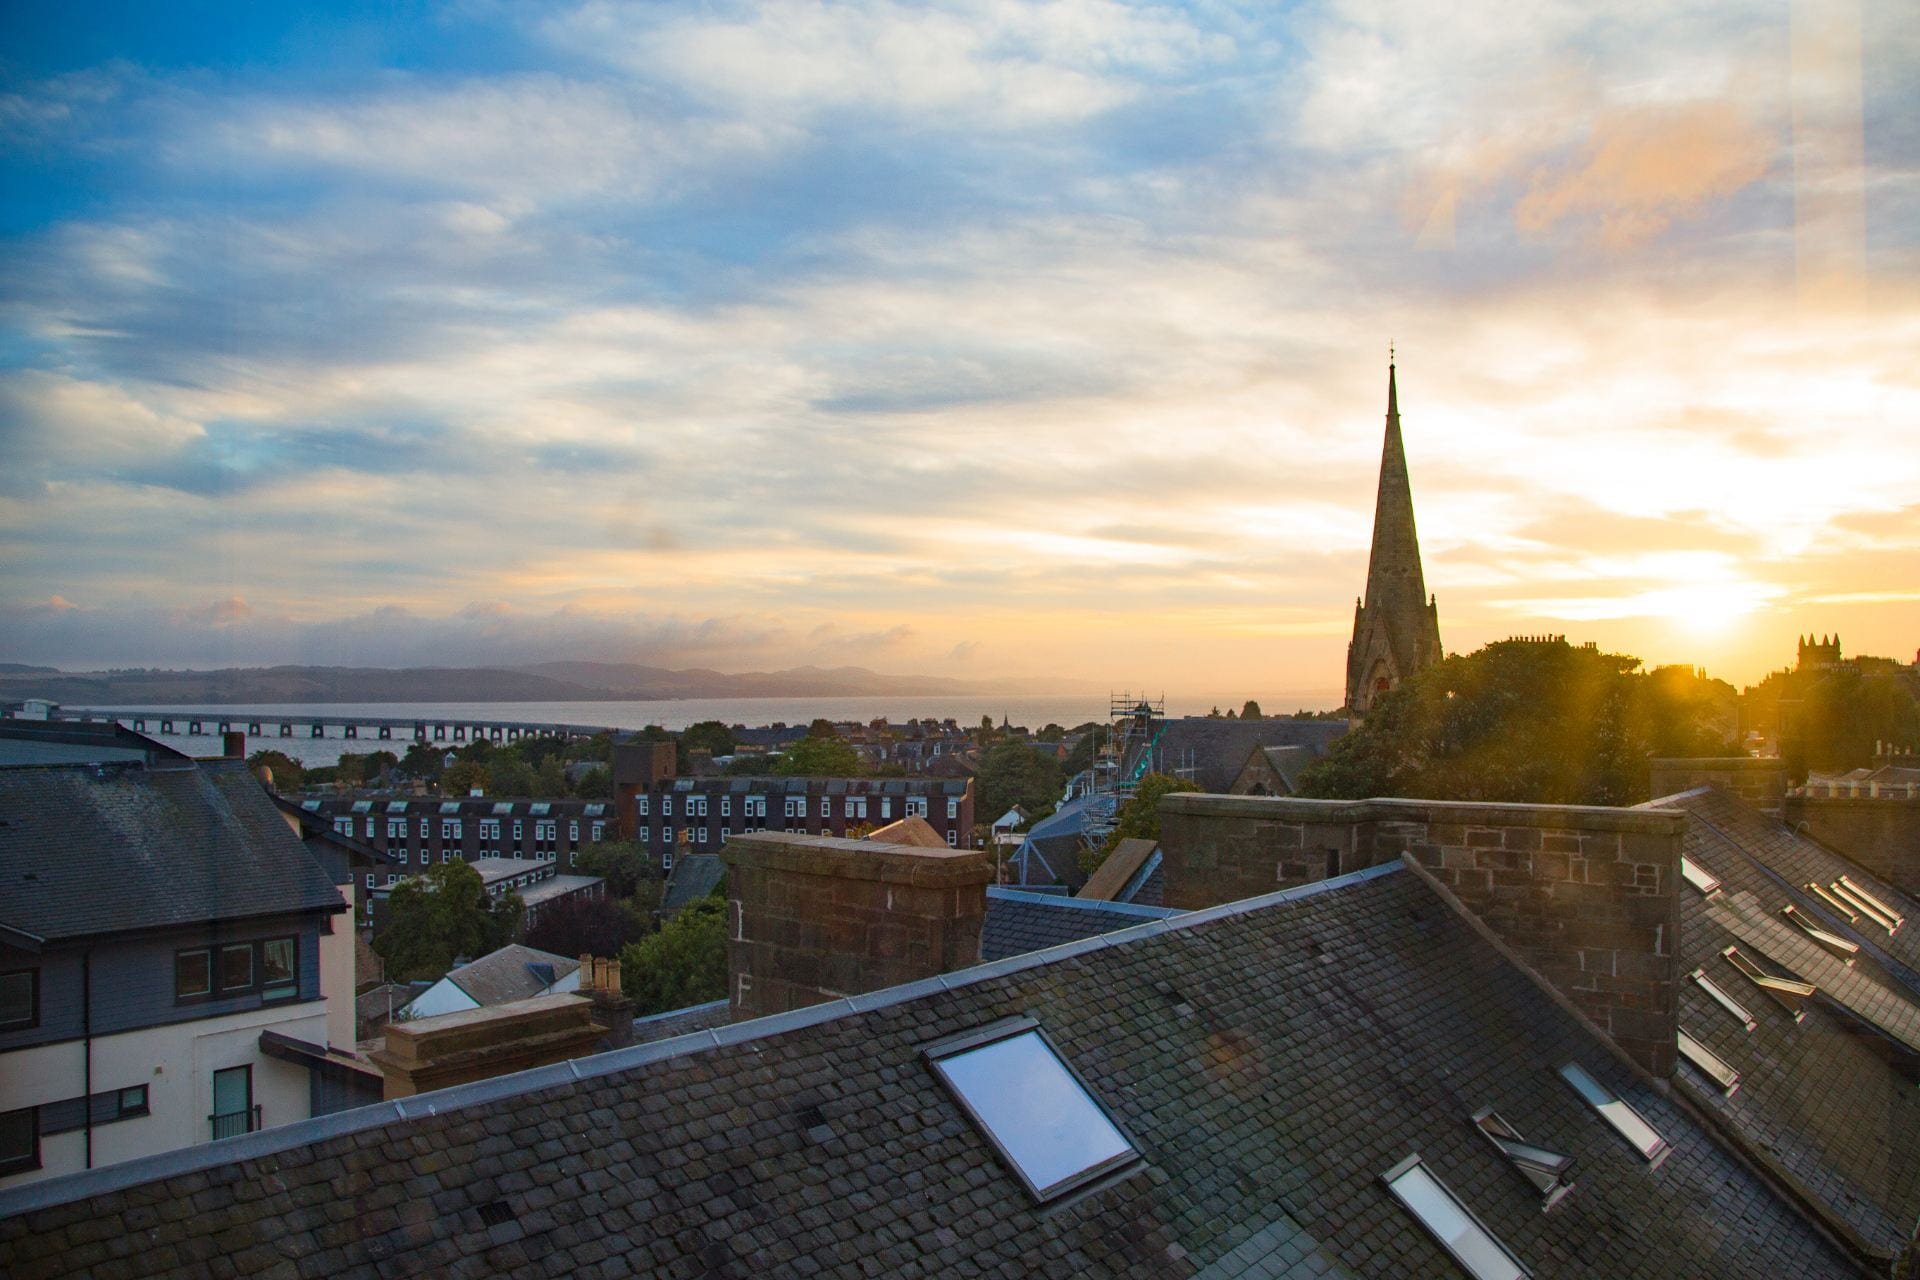 Sunset over Dundee rooftops